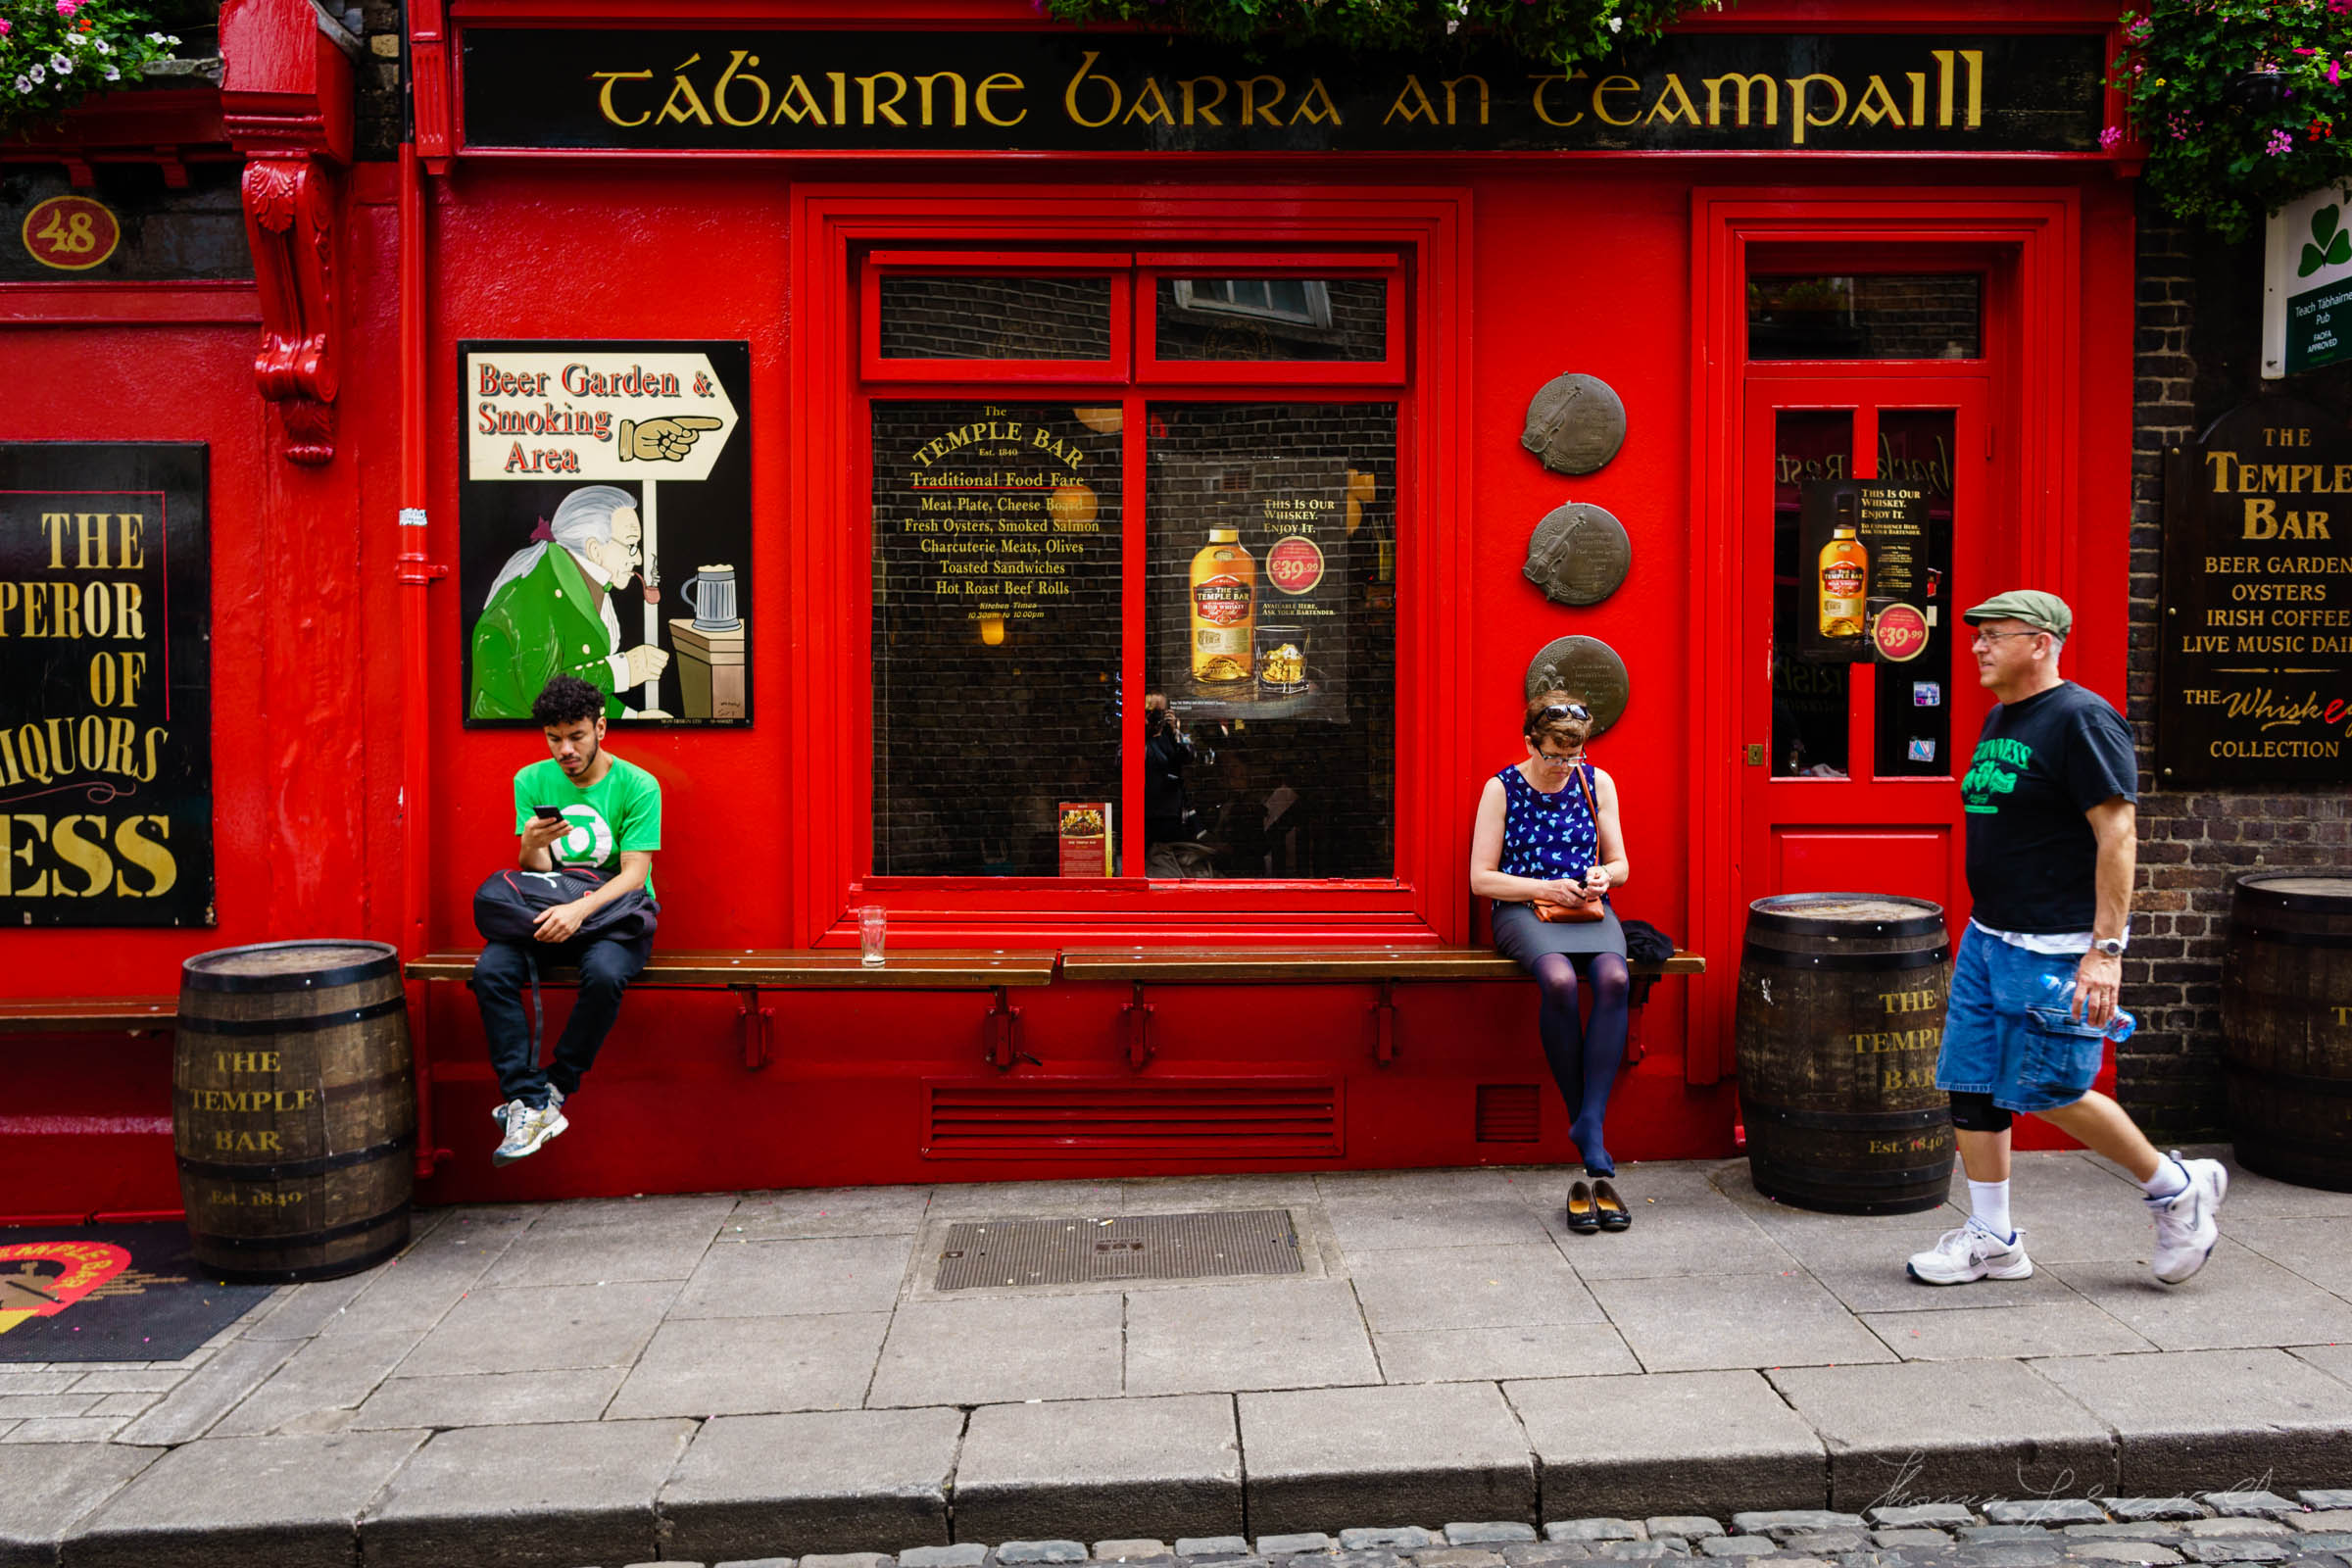 the Temple Bar Pub in Dublin - Street Photography by Thomas Fitzgerald